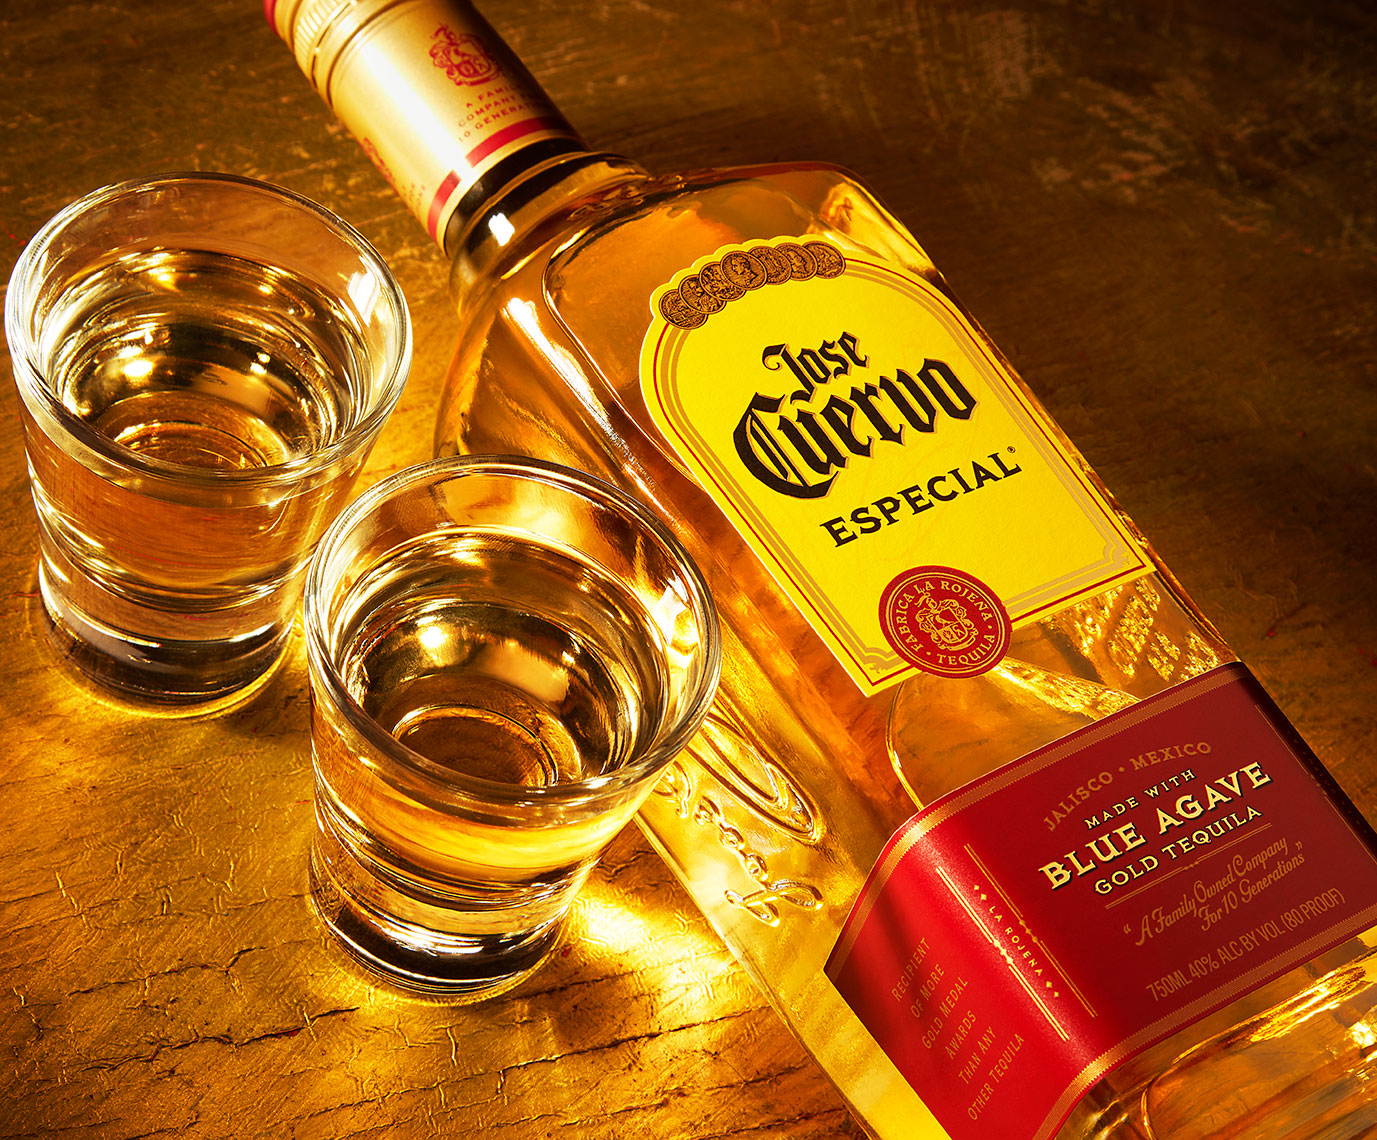 Red Productions Product & Still Life Photography Jose Cuervo Especial Blue Agave Gold Tequila